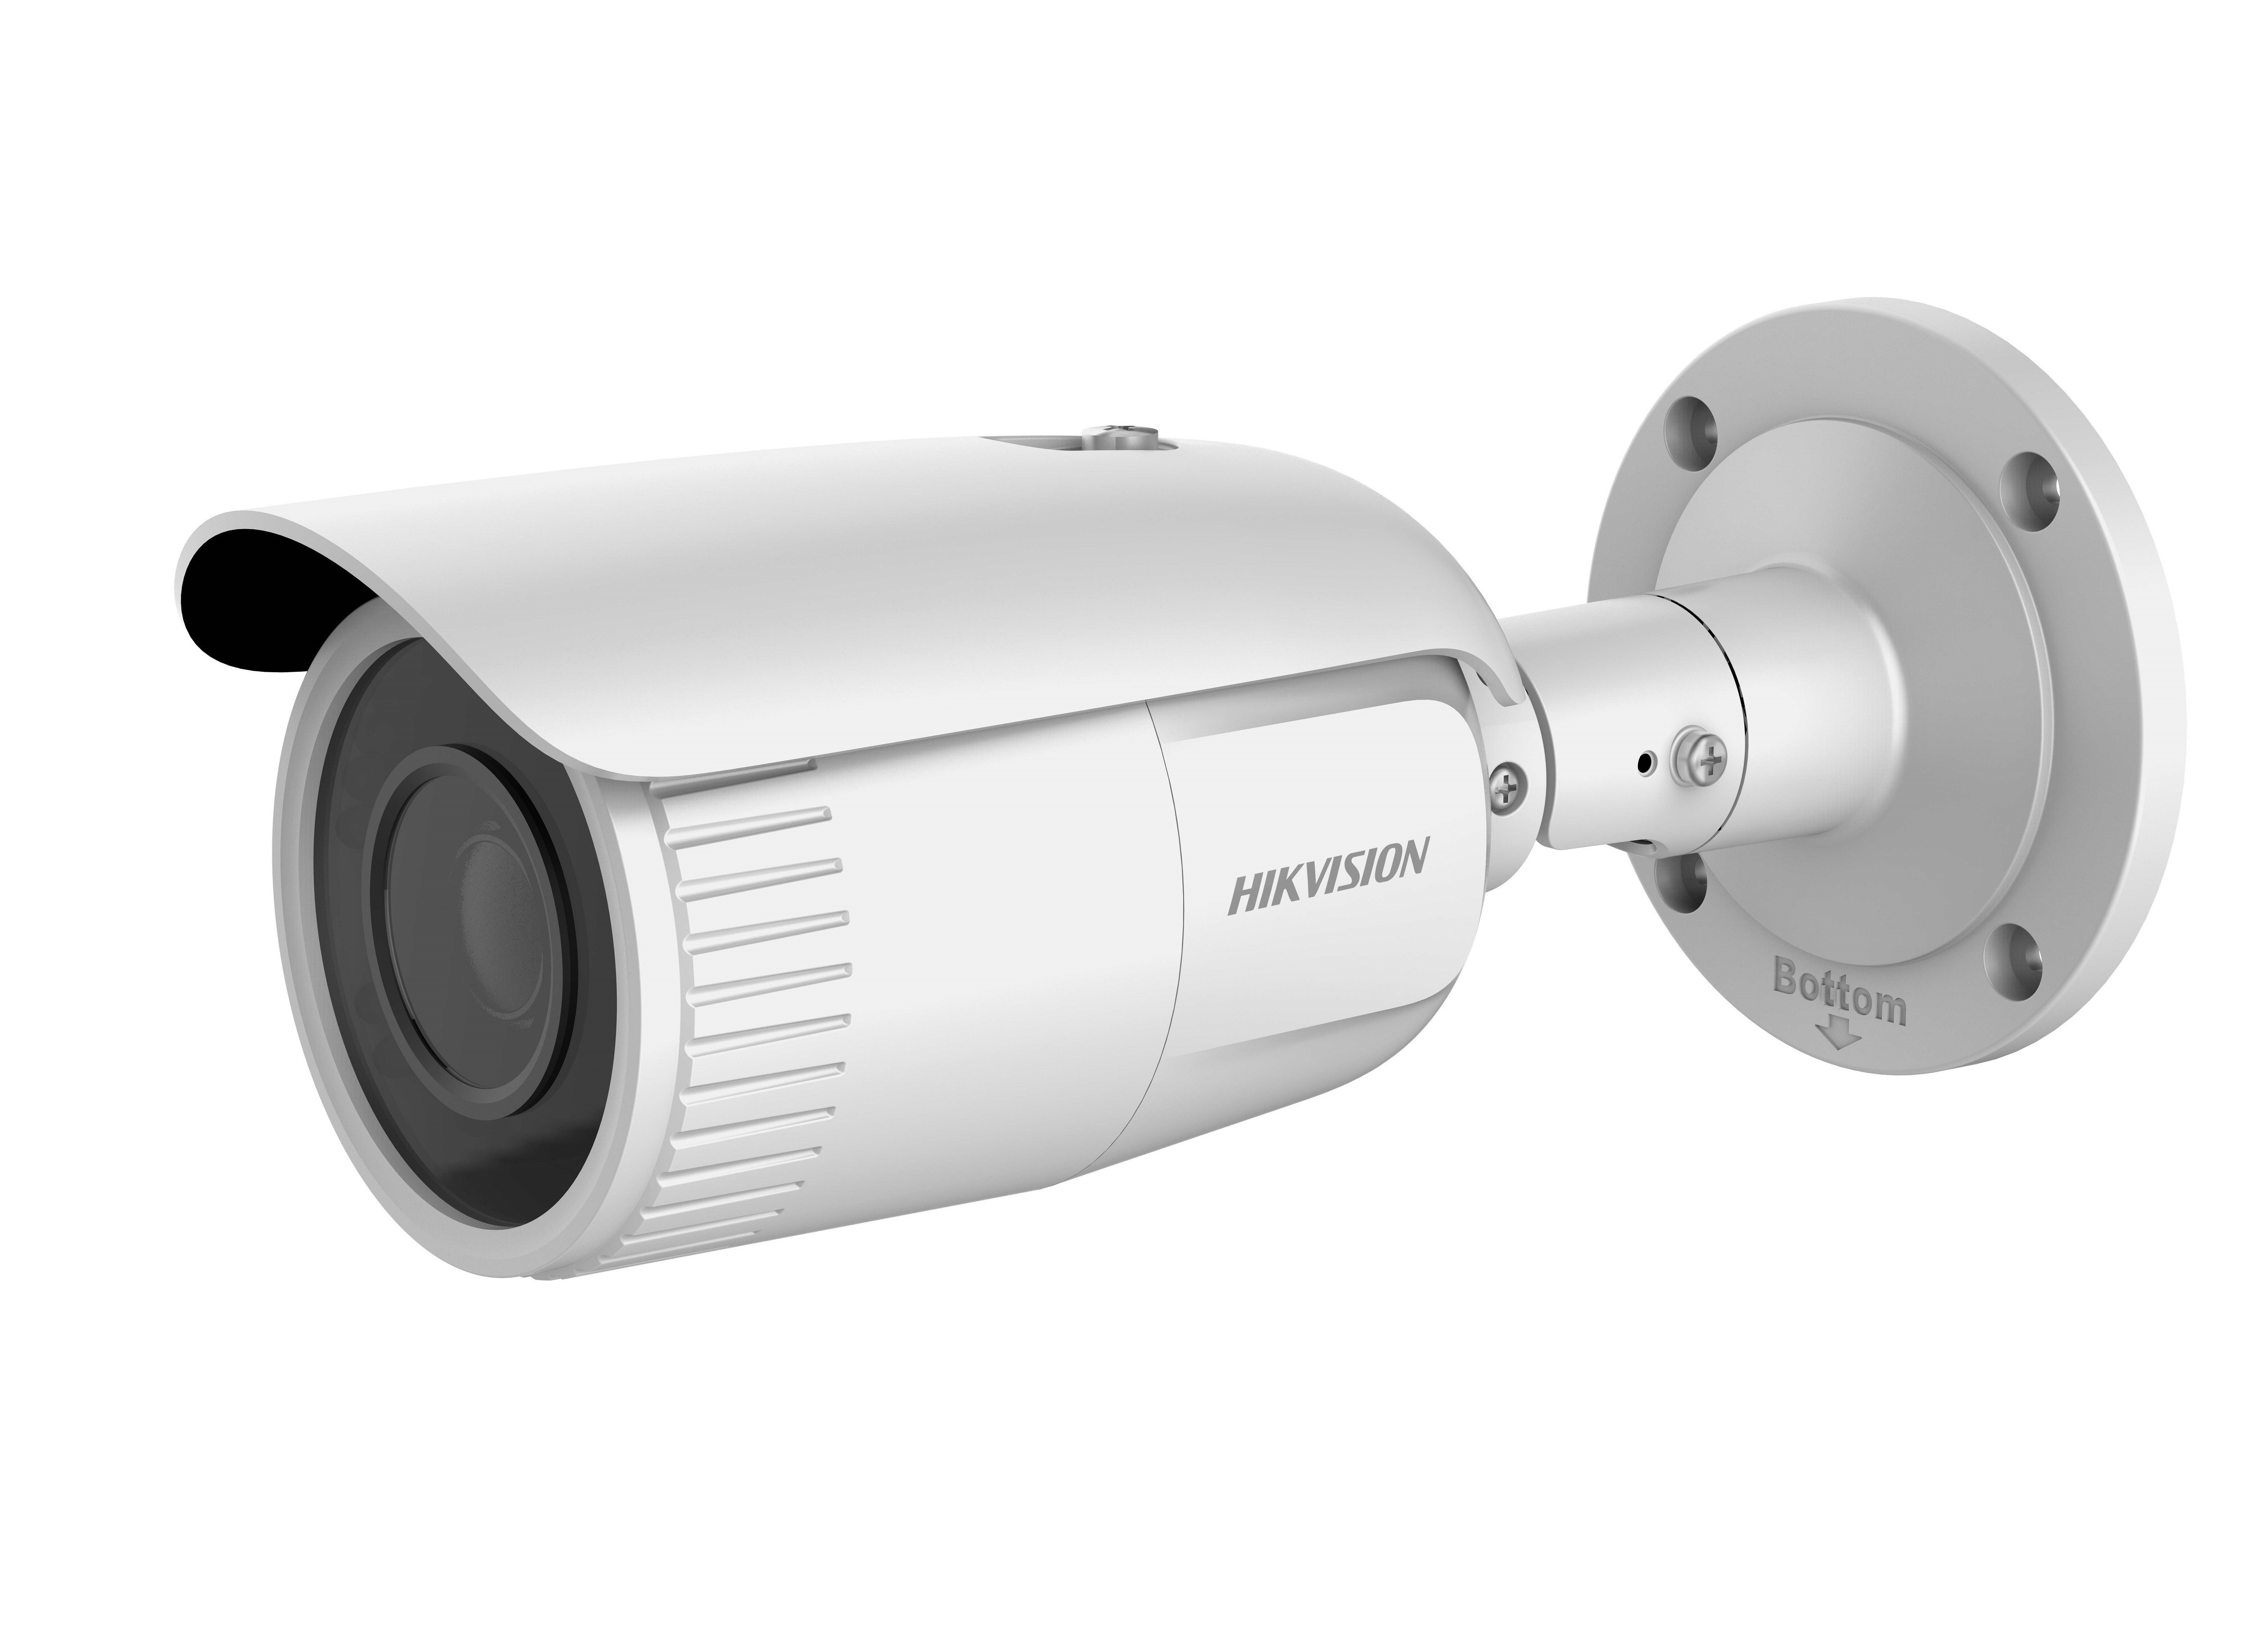 Hikvision DS-2CD1643G0-IZ 2.8-12mm